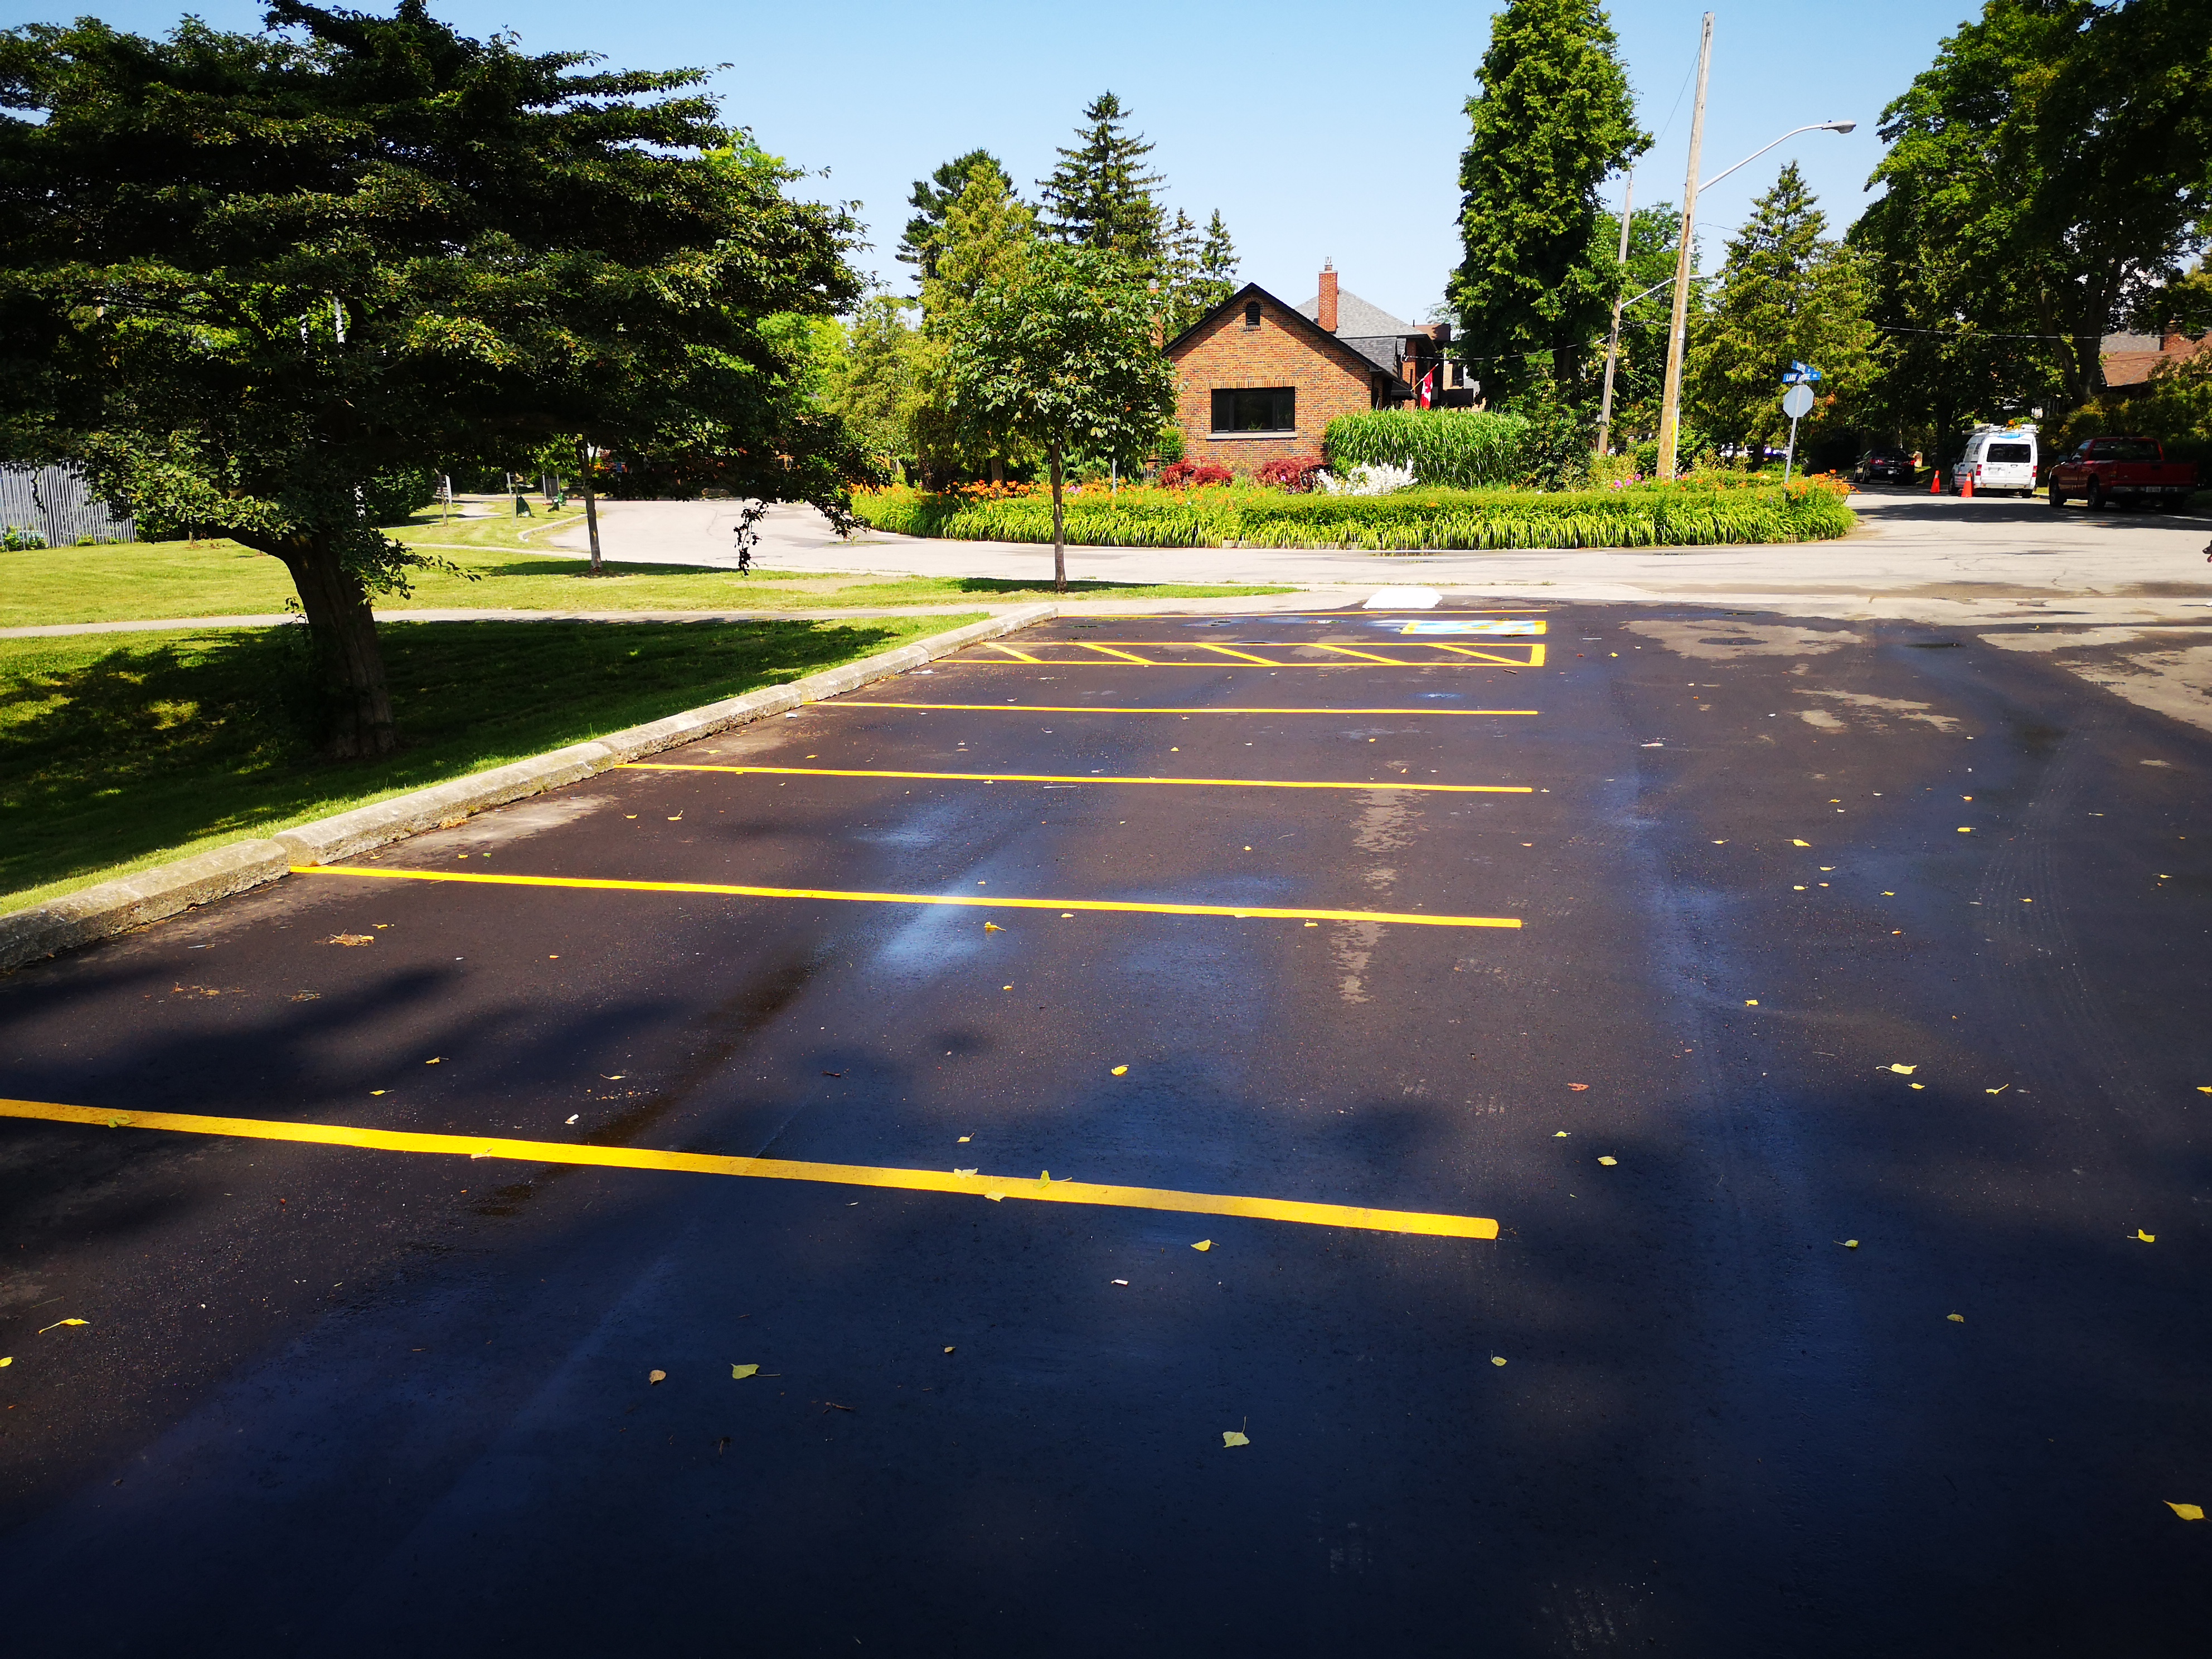 Completion of paving and painting of the parking lot. Source: TRCA, 2019.